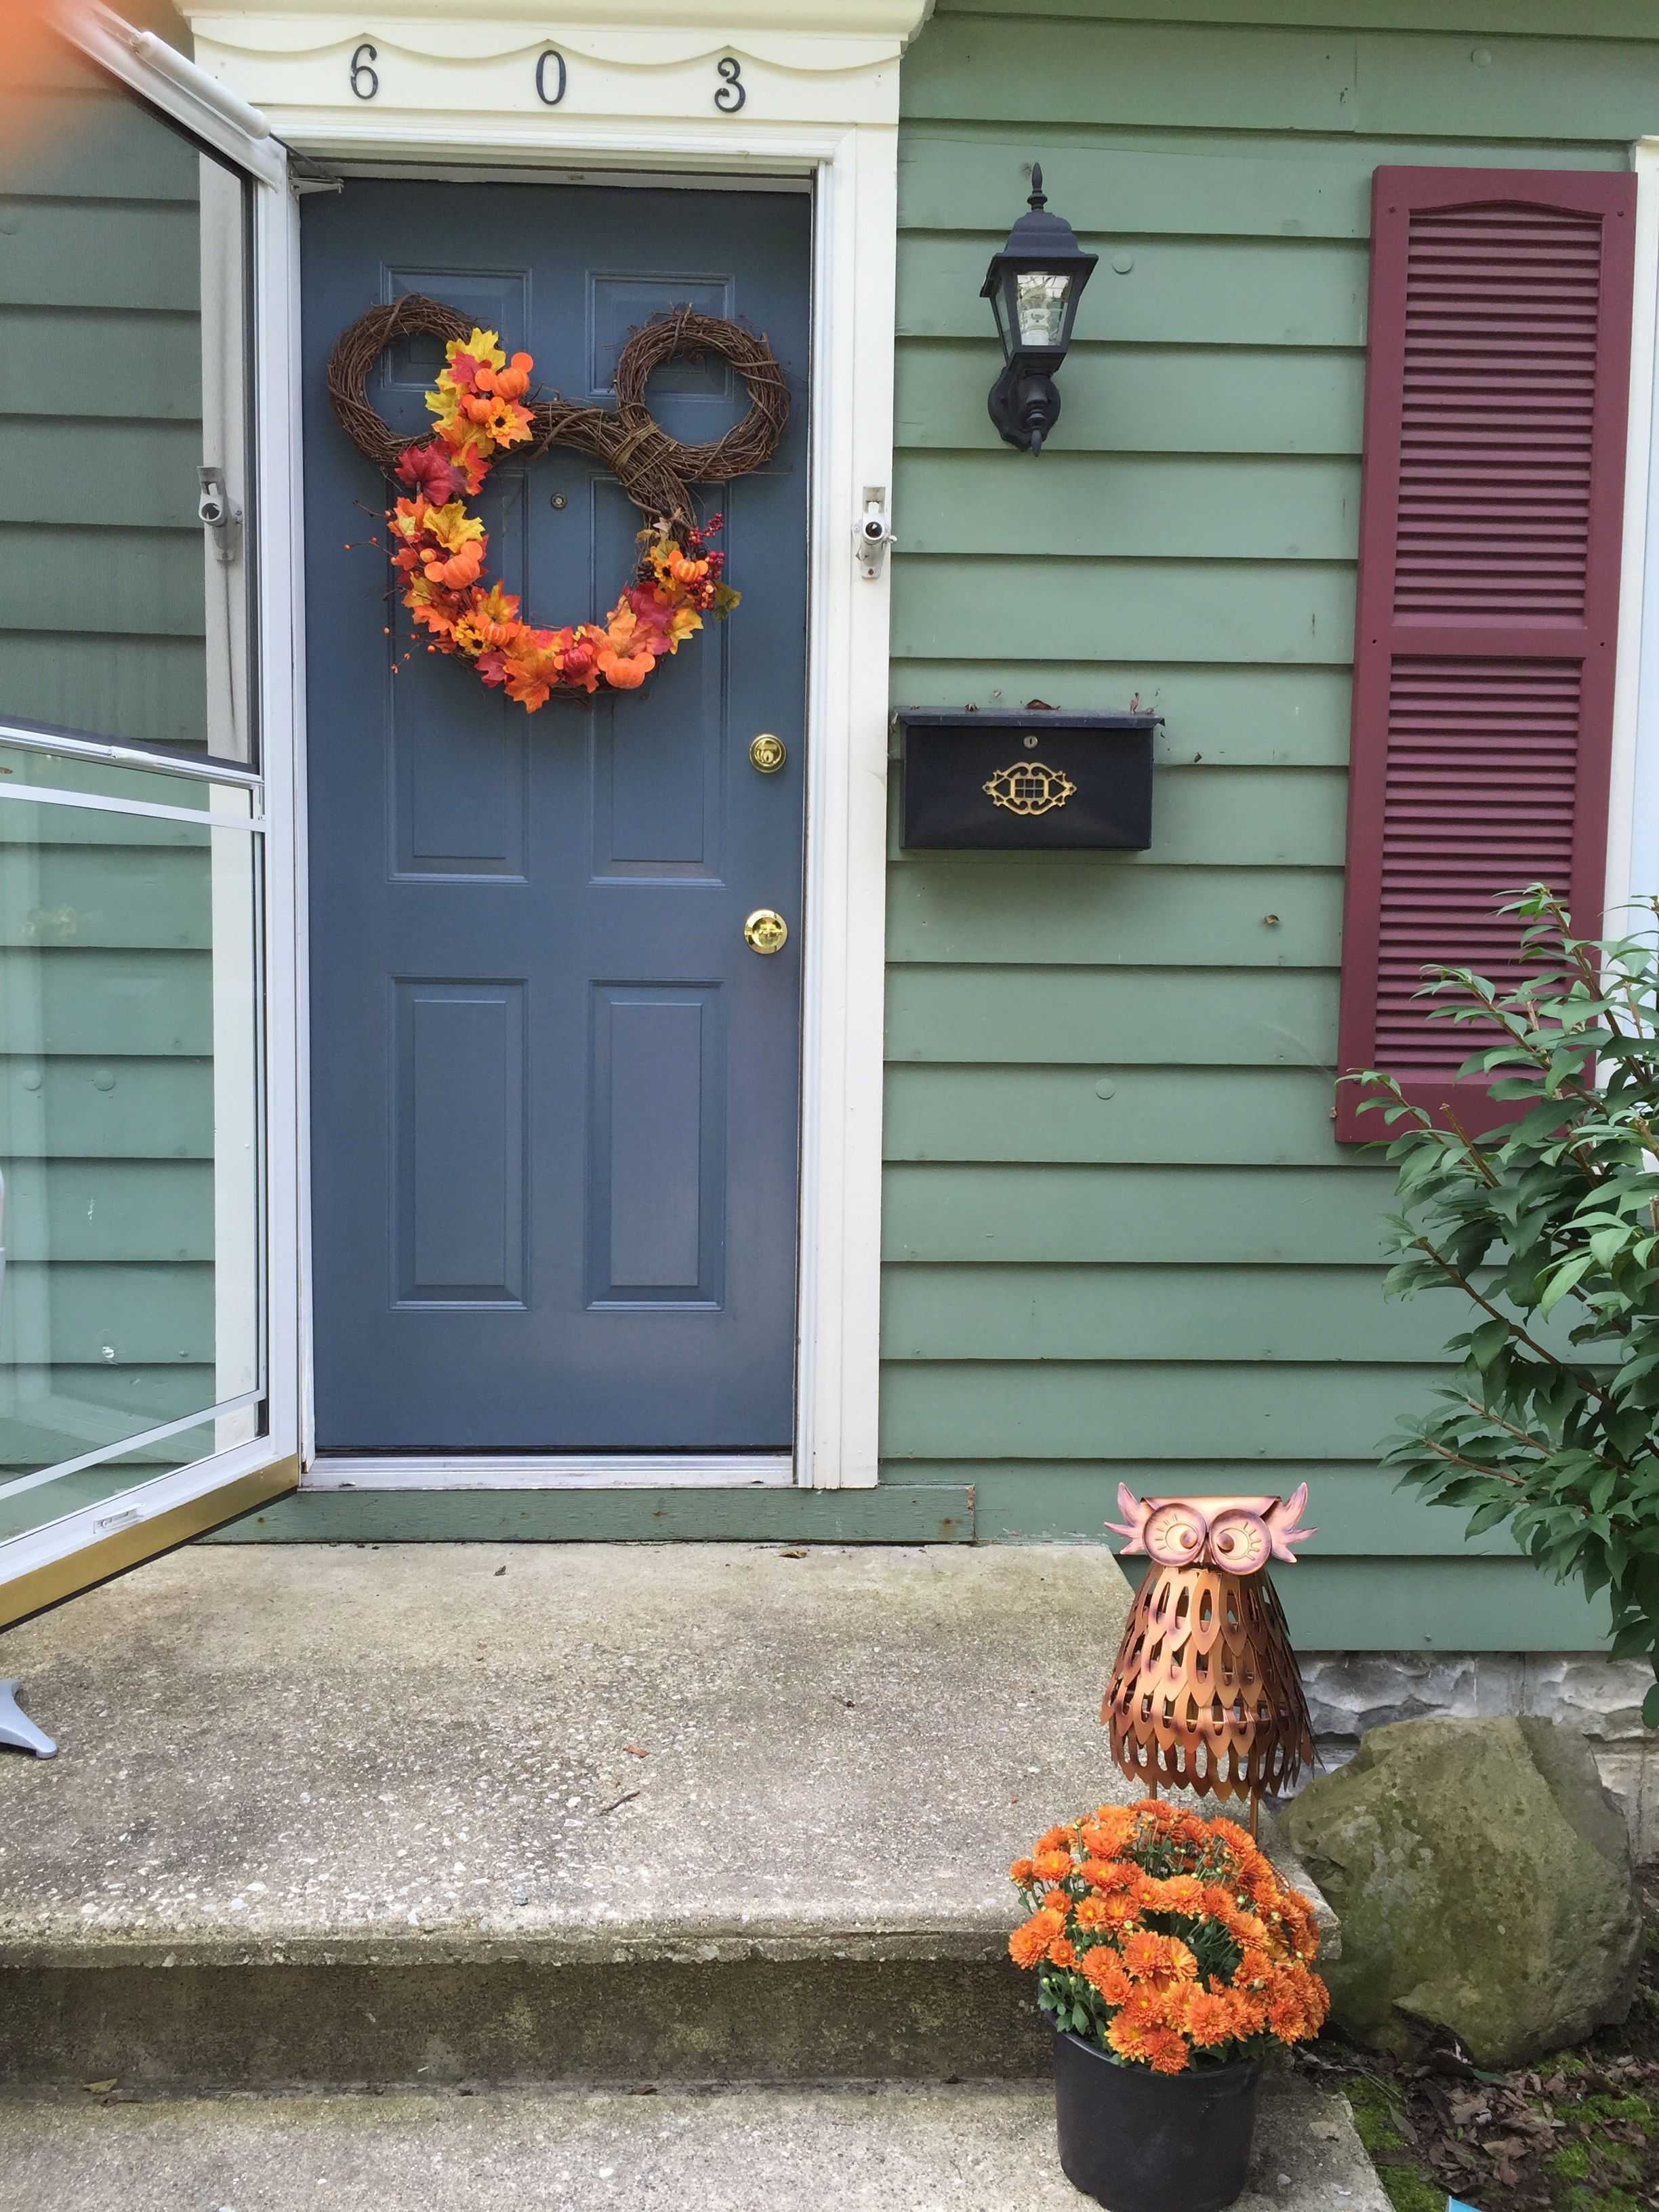 Our front door has a hole in it, just asking for a wreath to be hung. What better solution than to make a fall mickey wreath to greet our guests!?